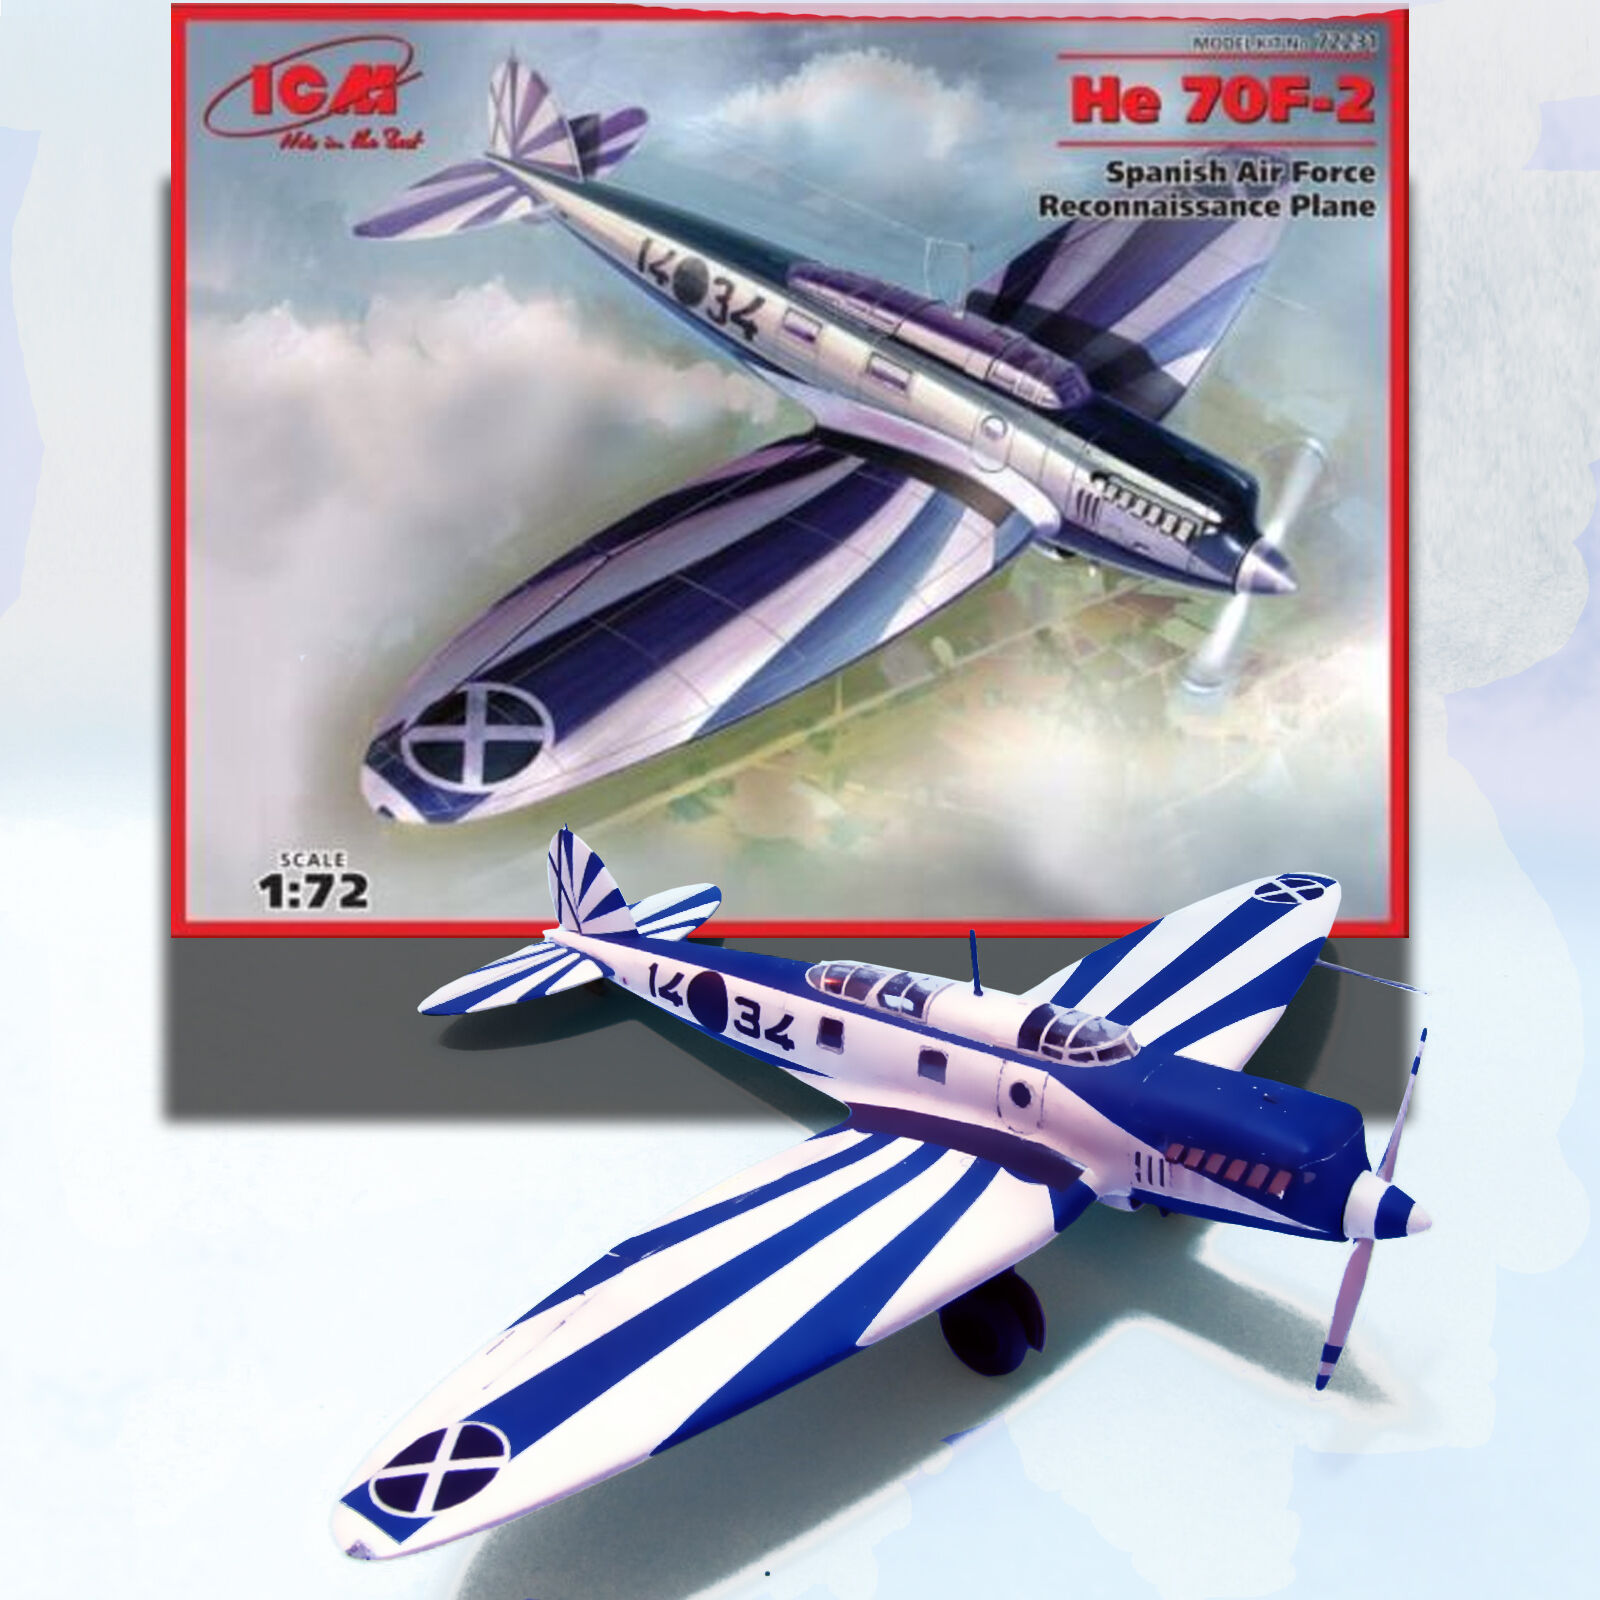 ICM 1 72 HEINKEL HE 70F-2 'SPANISH AIR FORCE RECON PLANE' KIT 72231